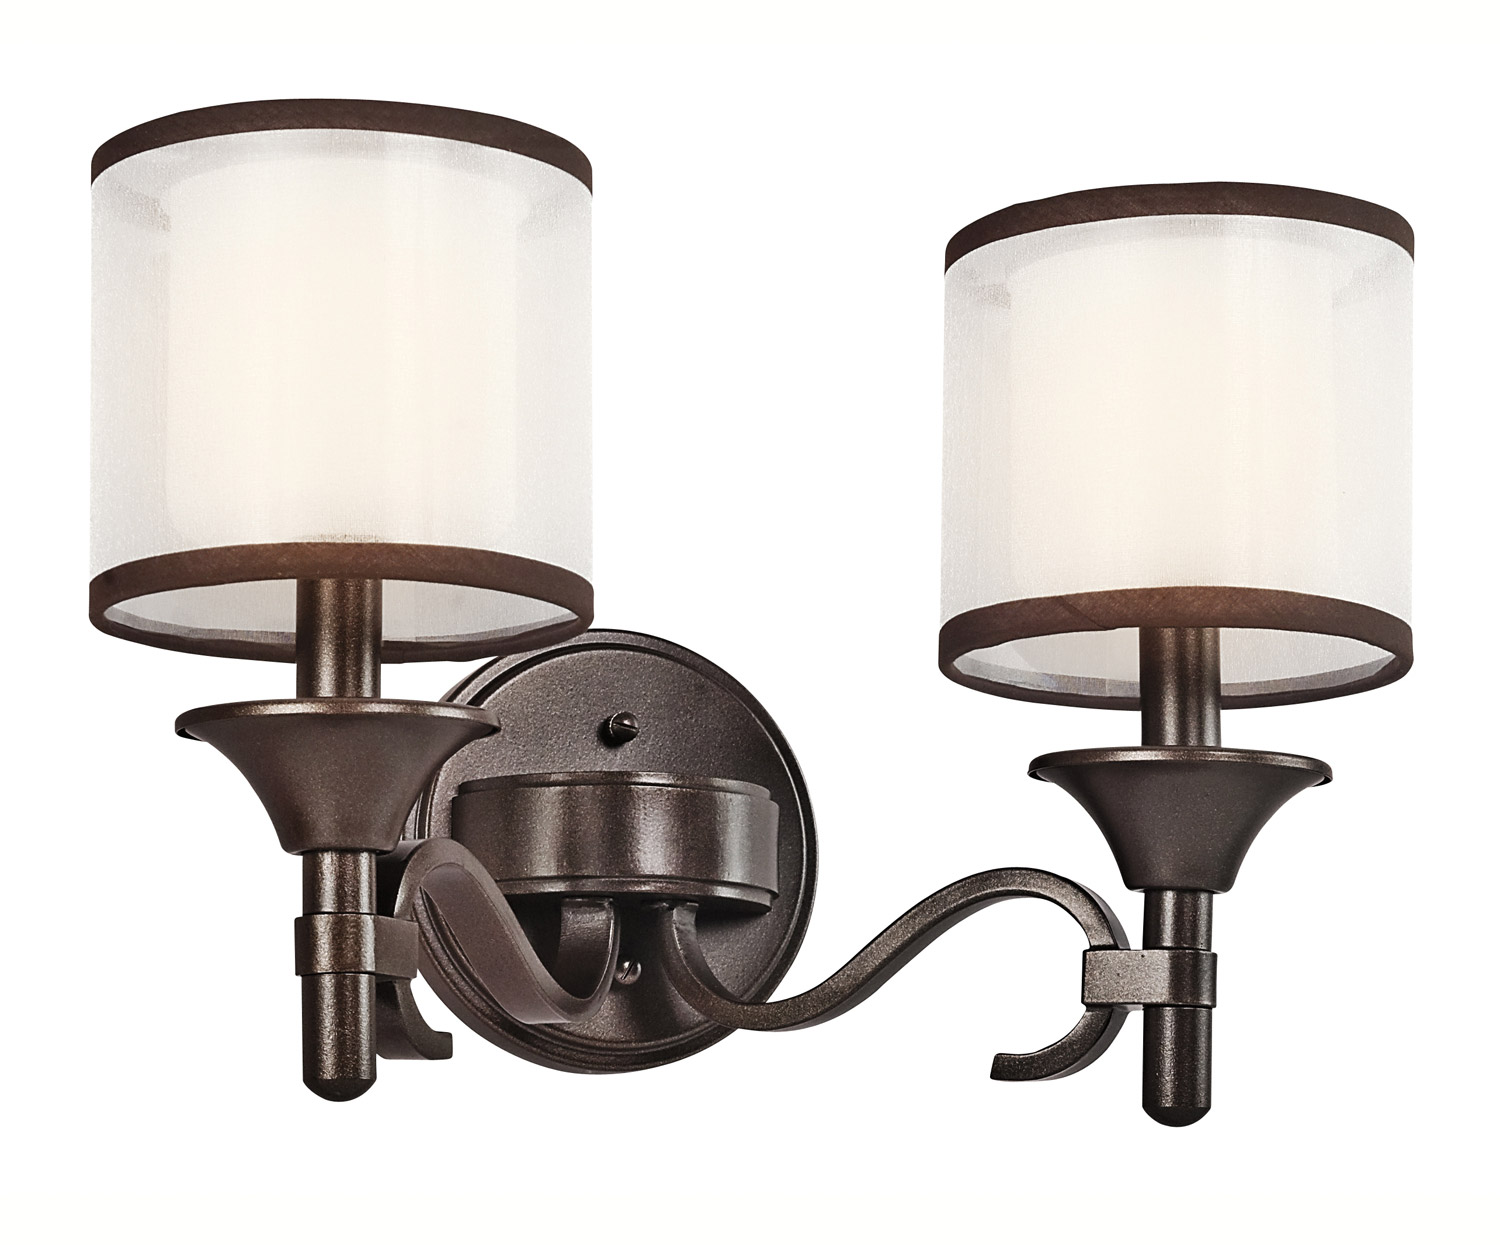 Vanity Lights Kichler : Kichler 45282MIZ Lacey Vanity Light